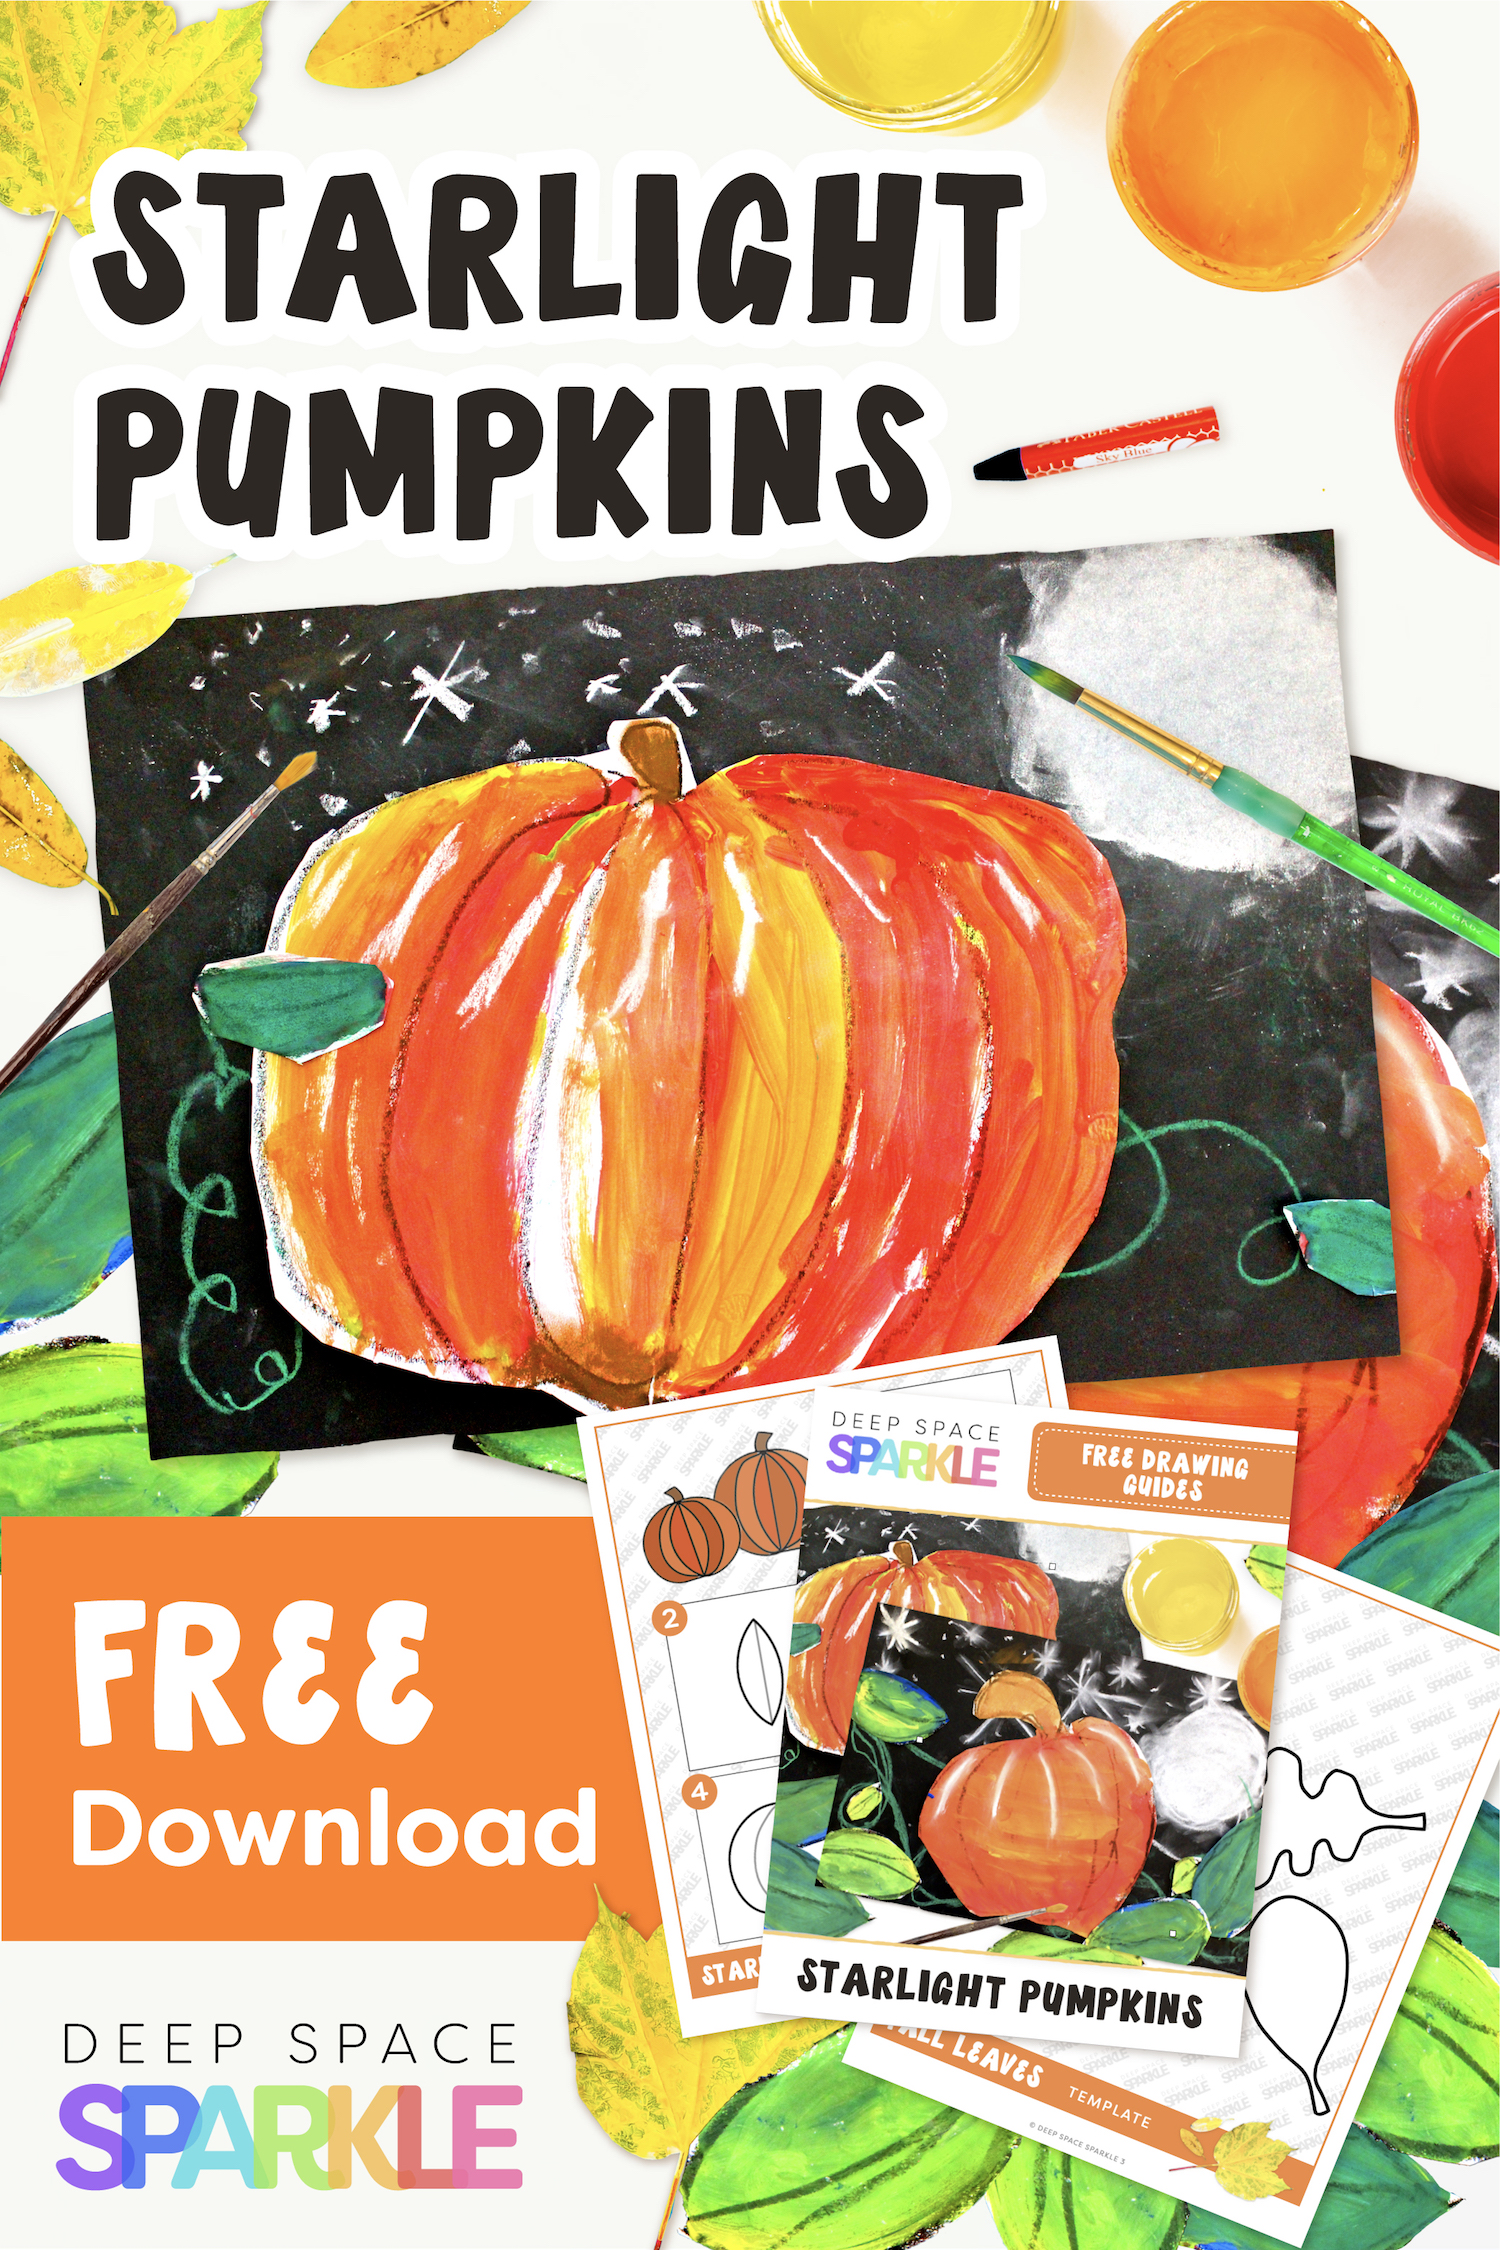 Starlight Pumpkins art projects for the fall season. Pumpkin lessons for students in the art room using easy supplies with kindergarteners. Free drawing guides included!